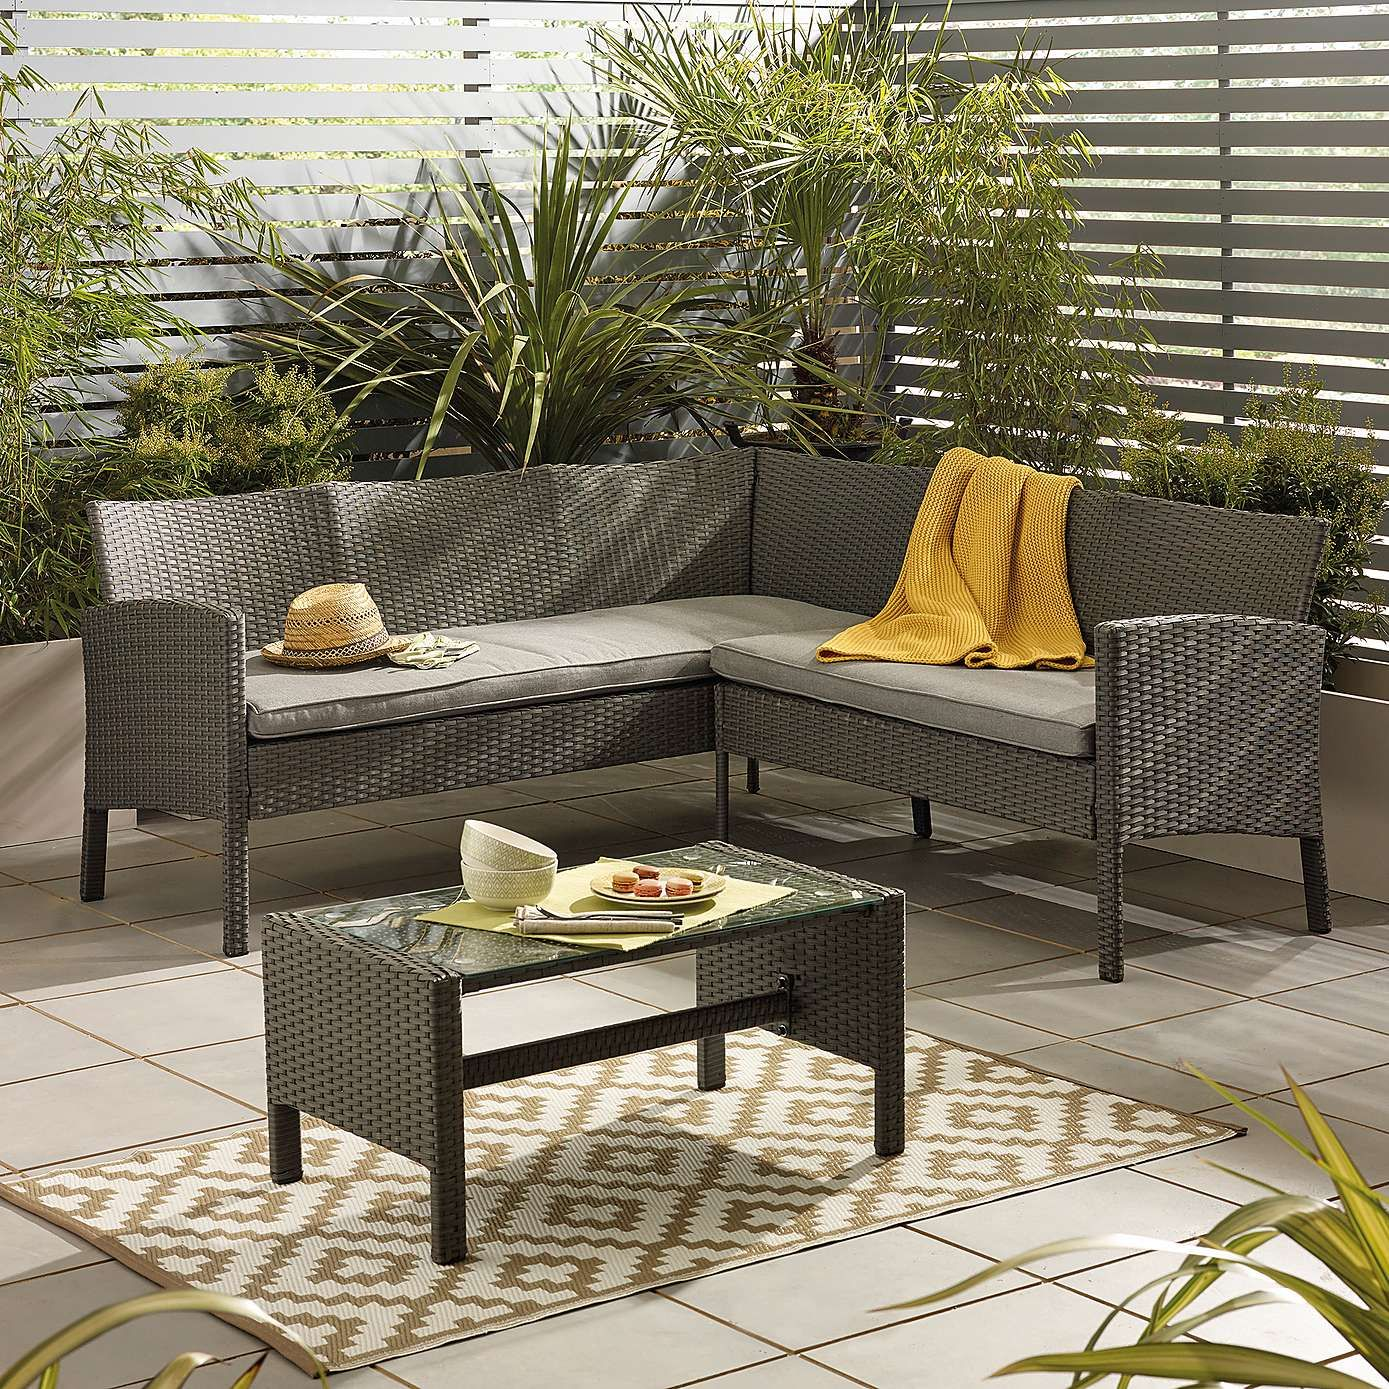 Excellent Nevada Grey Rattan Corner Sofa Set In 2019 Rattan Corner Caraccident5 Cool Chair Designs And Ideas Caraccident5Info